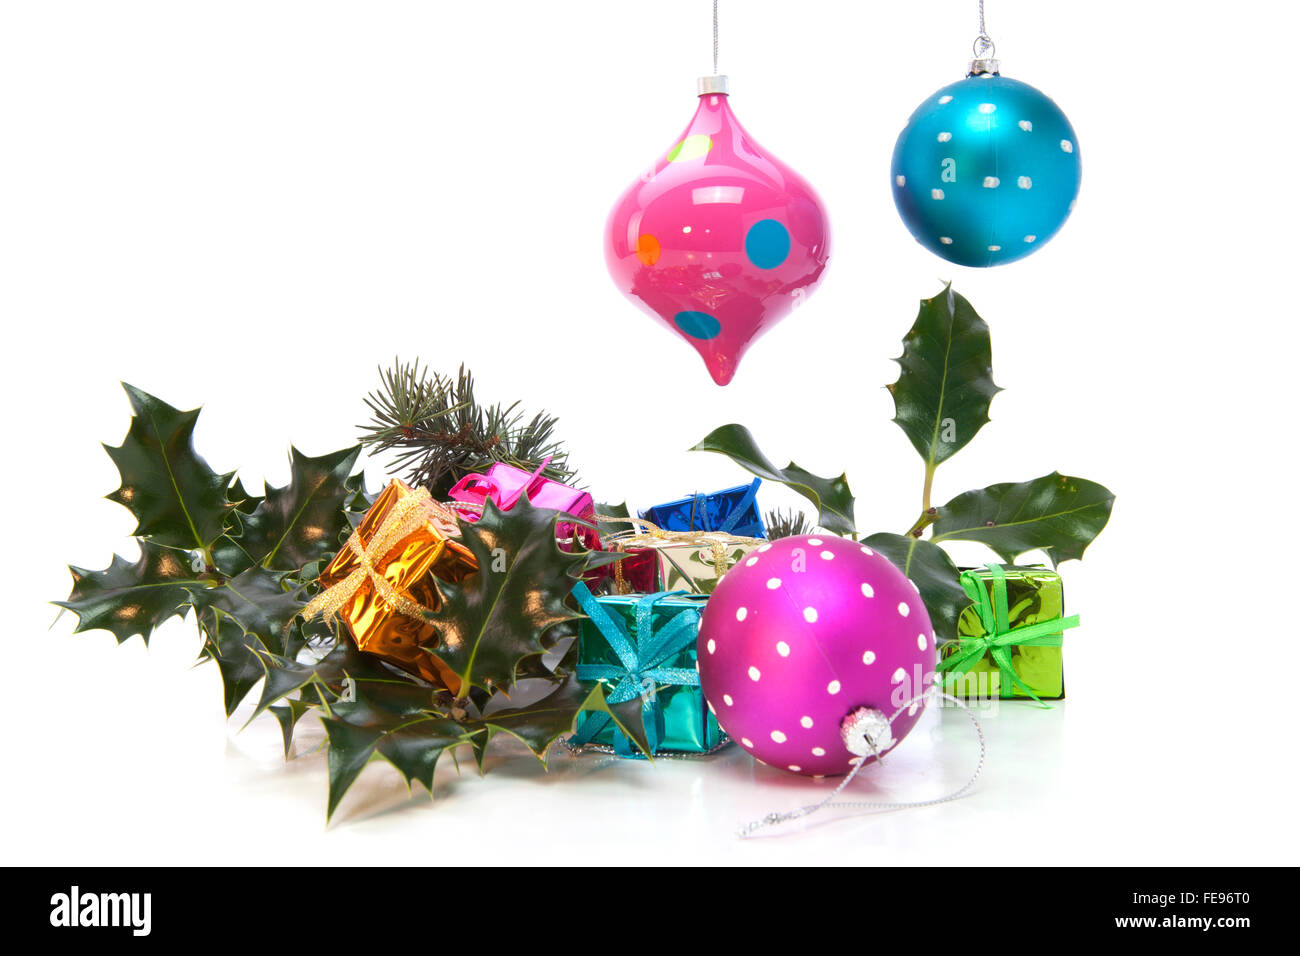 Christmas Decorations with Holly, Balls and Gifts Stock Photo